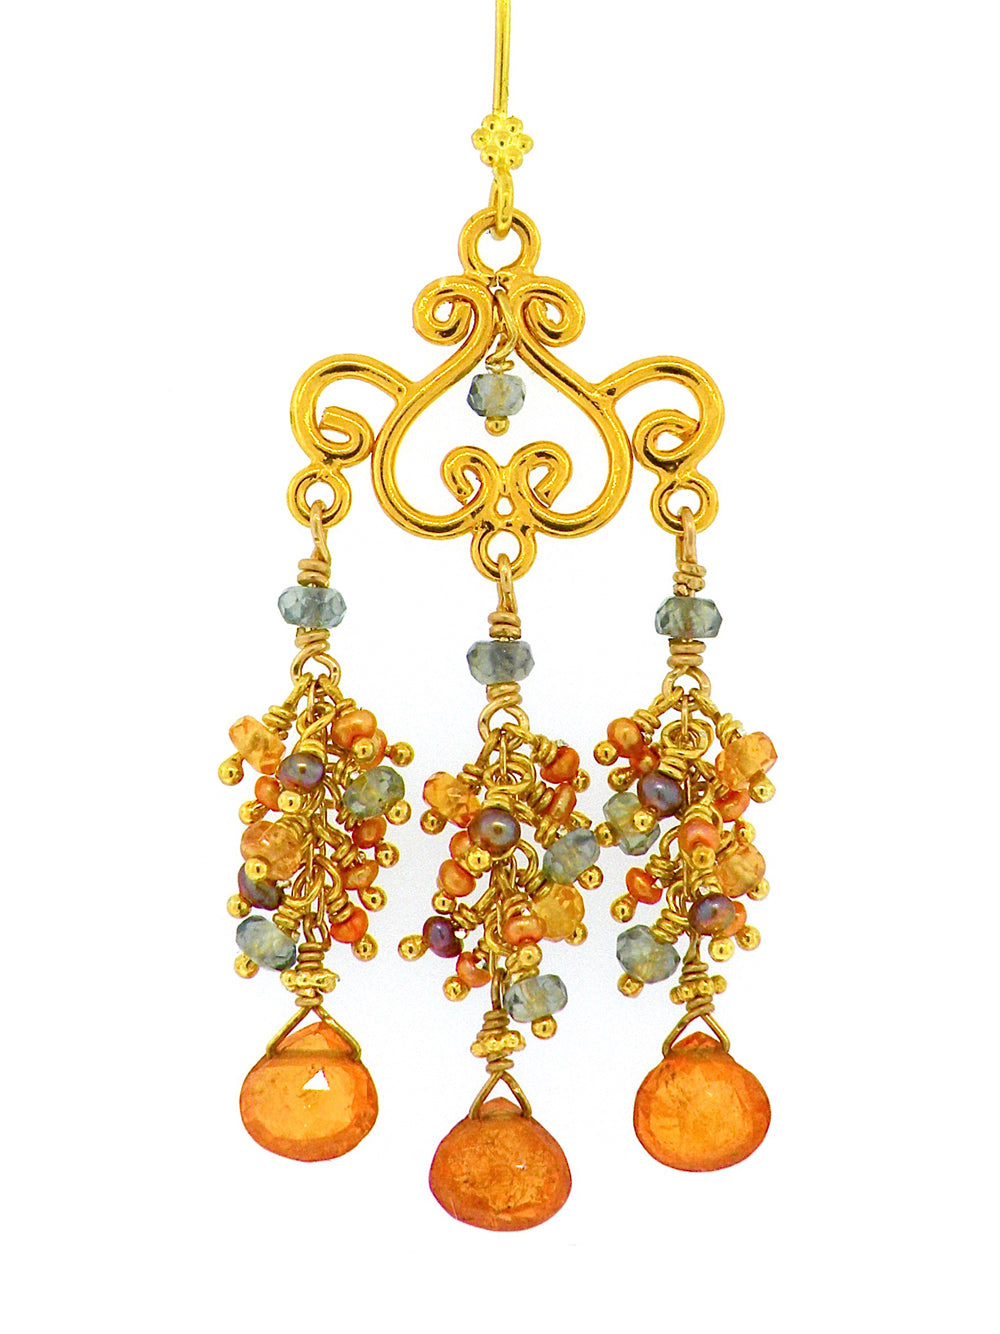 Prismatic Light Temple Within the Familia Sagrada Earrings - Dana Busch Designs